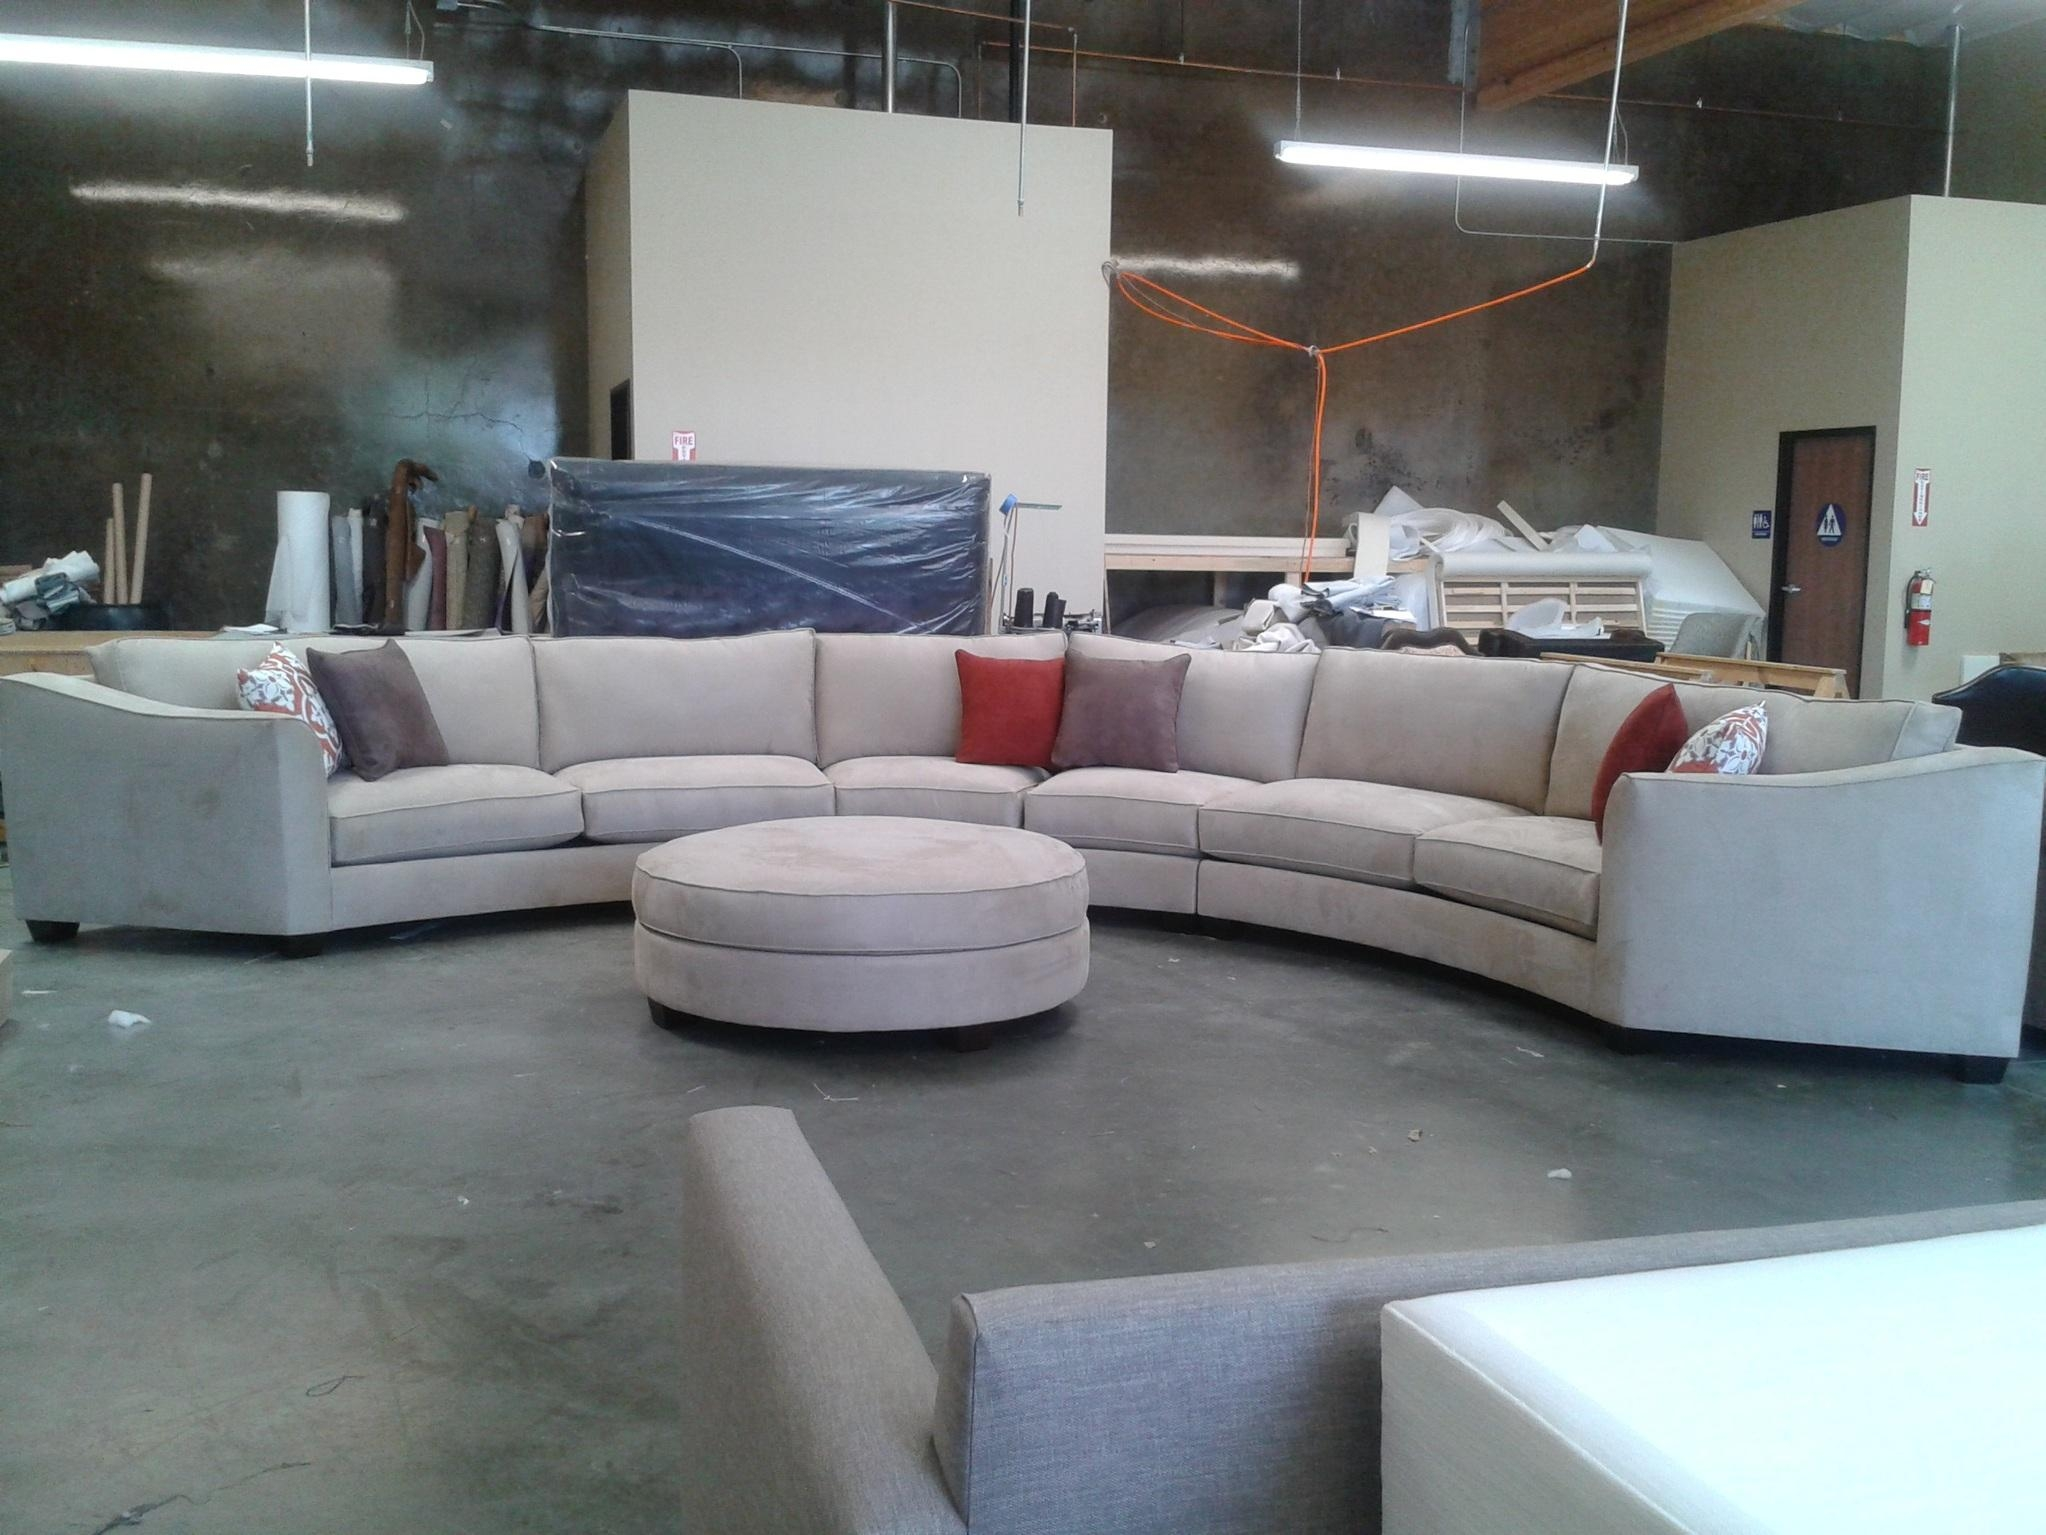 Sofa Round Sectional Bed   Tamingthesat Inside Round Sectional Sofa (Image 18 of 20)